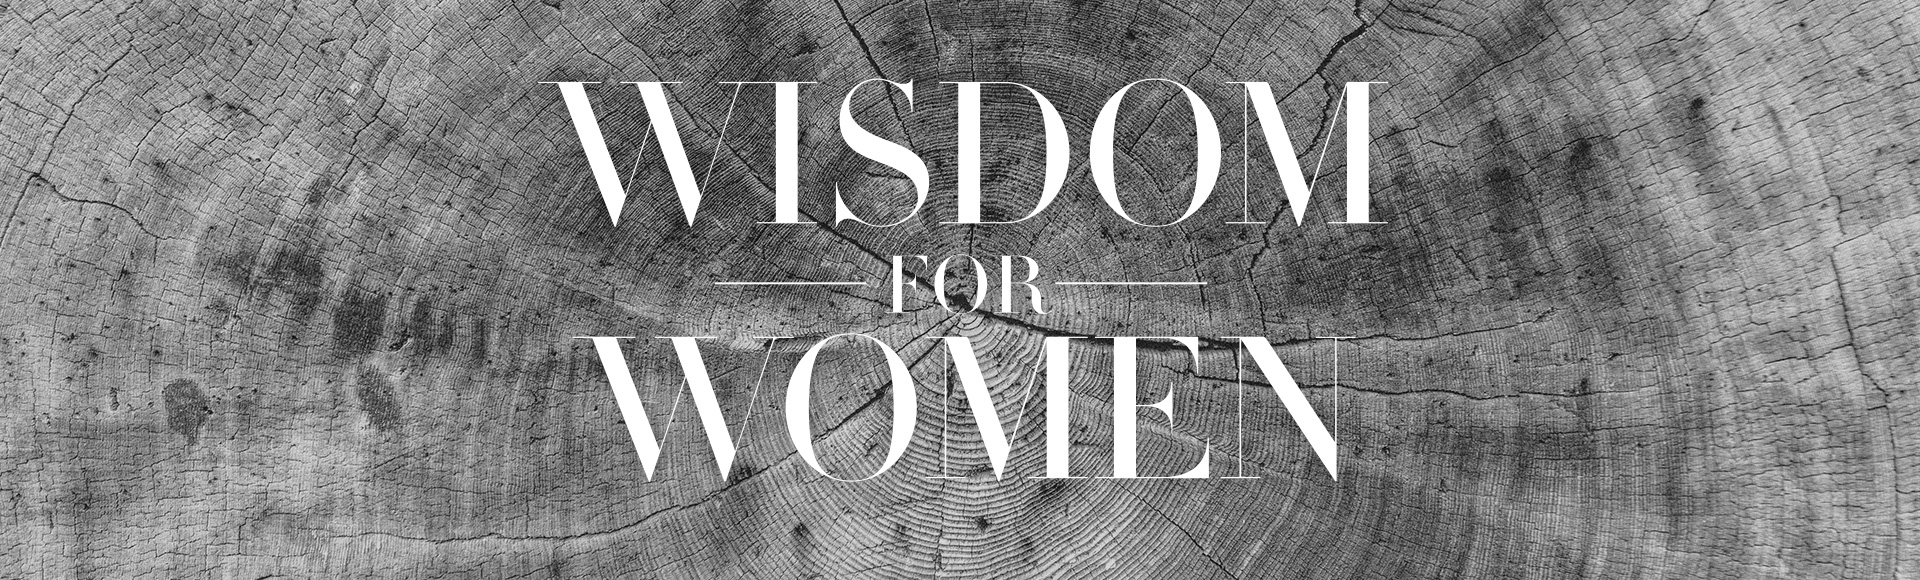 Wisdom-for-Women-Web-1920x580